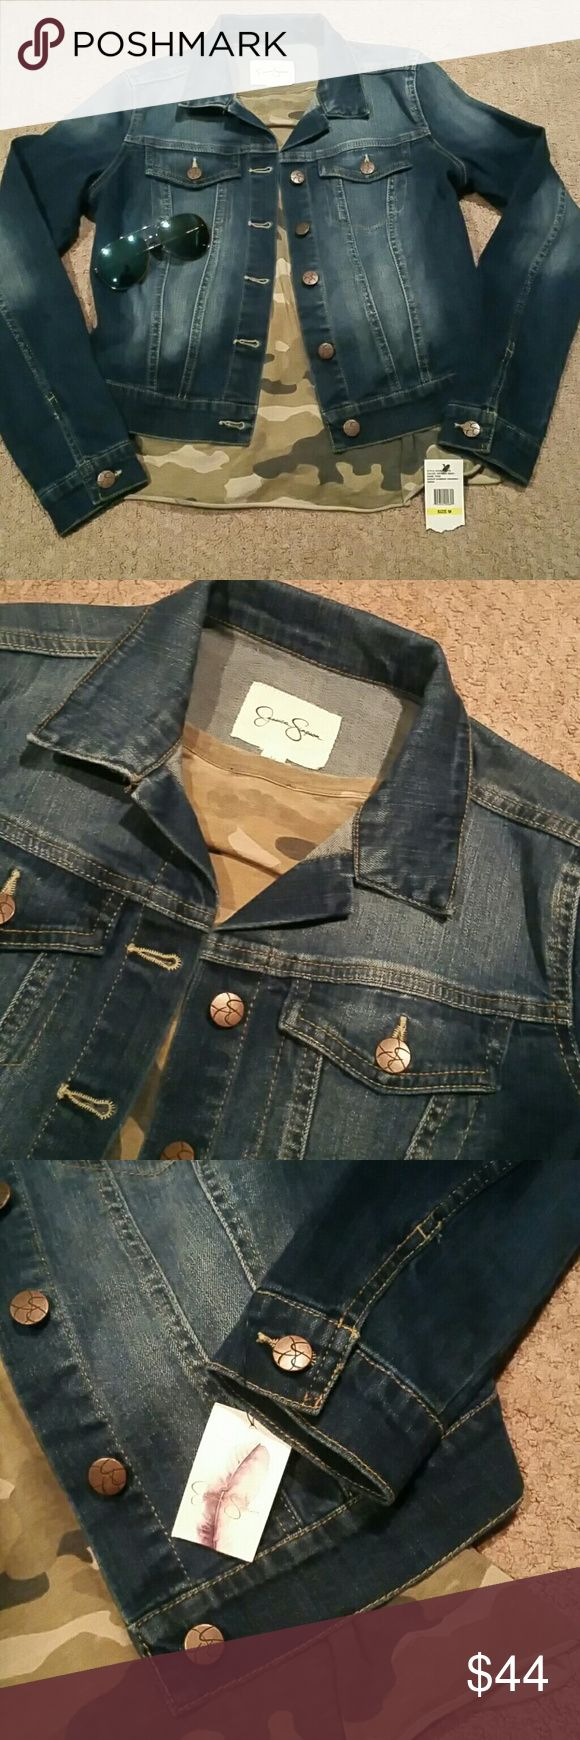 Jessica Simpson Denim Jacket Jessica Simpson Pixie Denim Jacket In the Jefford  Wash.  Size Medium Brand New With Tags. Perfect For Those Cool Nights Over Your Summer Wardrobe. Jessica Simpson Jackets & Coats Jean Jackets